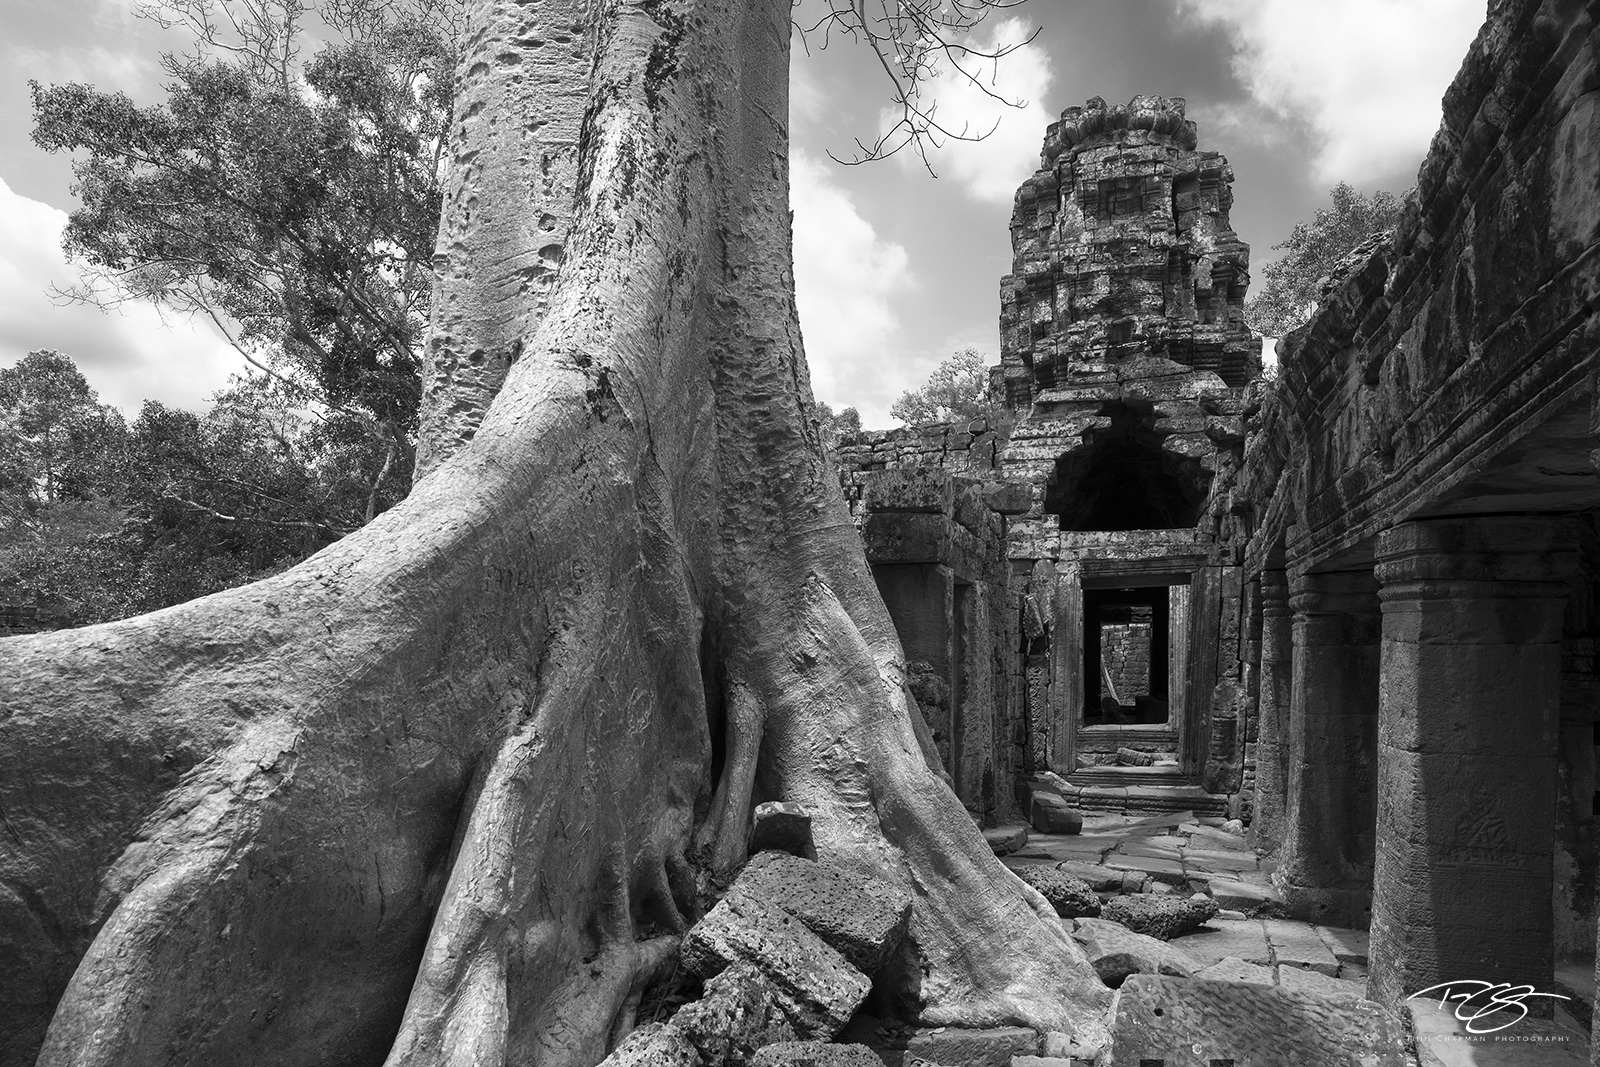 cambodia, temple, guardians, tree roots, roots, tree, spung, strangler, banyan, black and white, b&w, Banteay Kdei, angkor wat, monastery, gallery, chamber, ancient, overgrown, reclamation, nature rec, photo